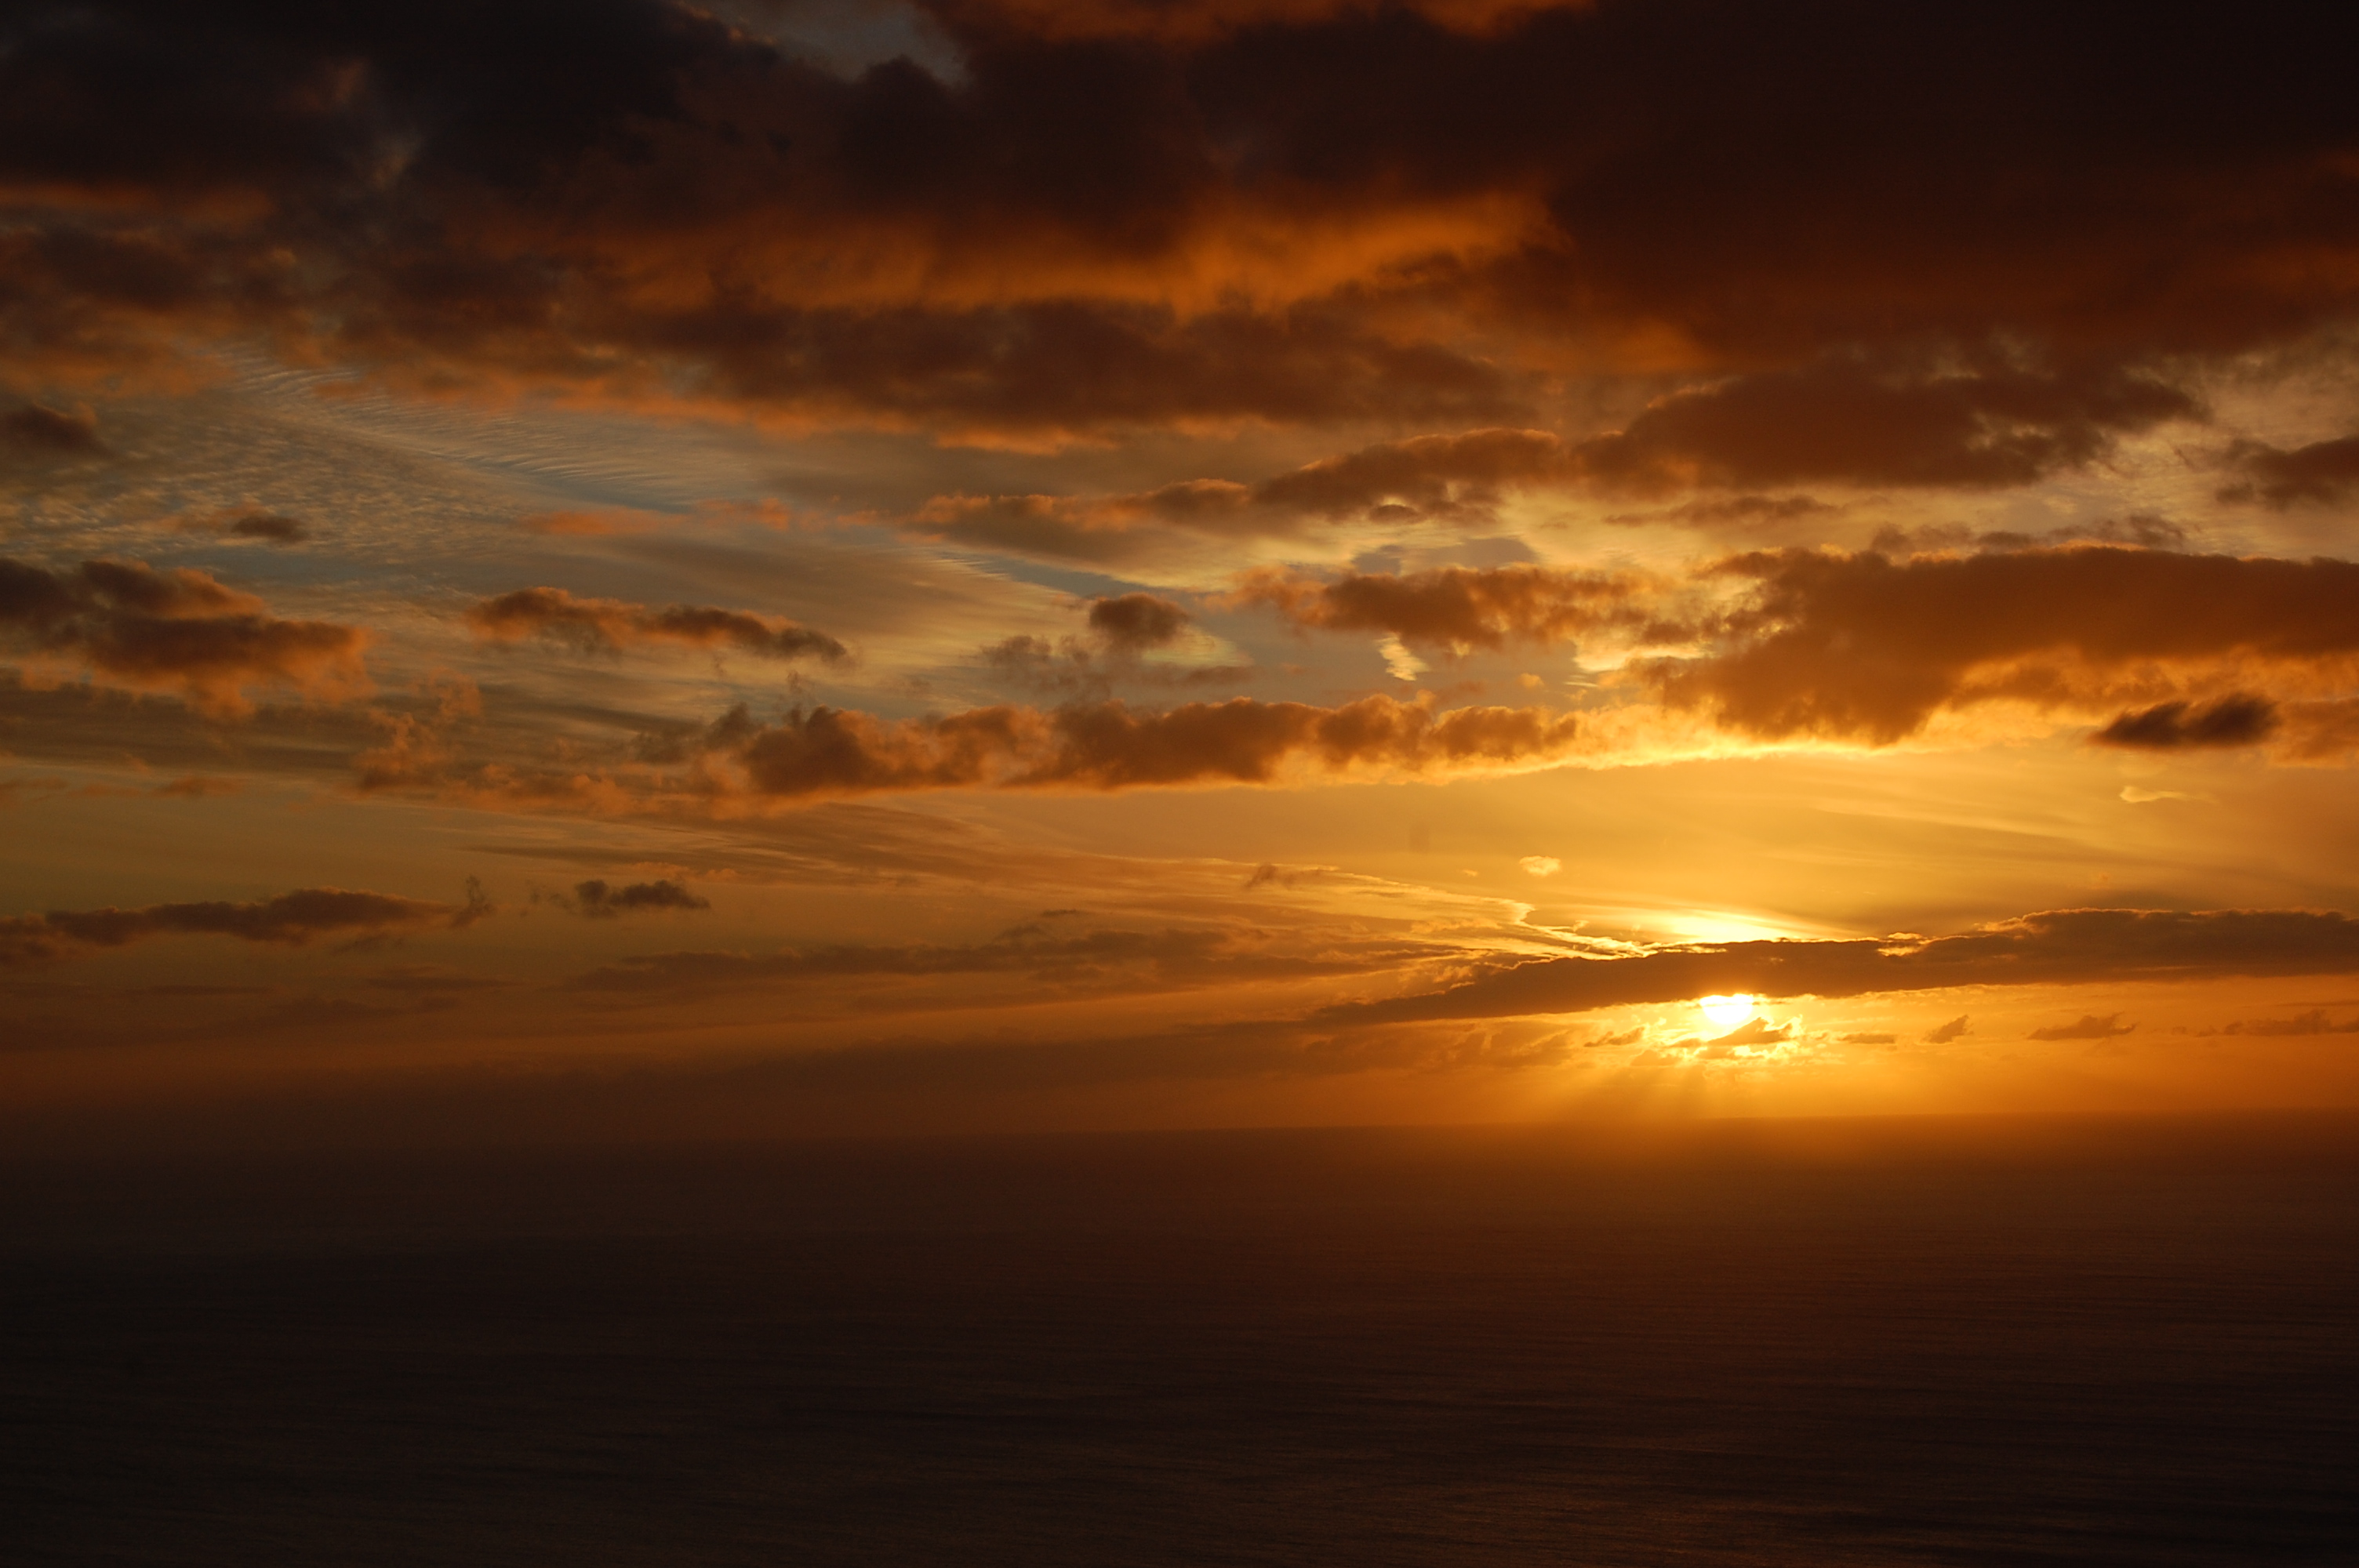 An amber coloured sunset with shafts of light coming through clouds over the sea.